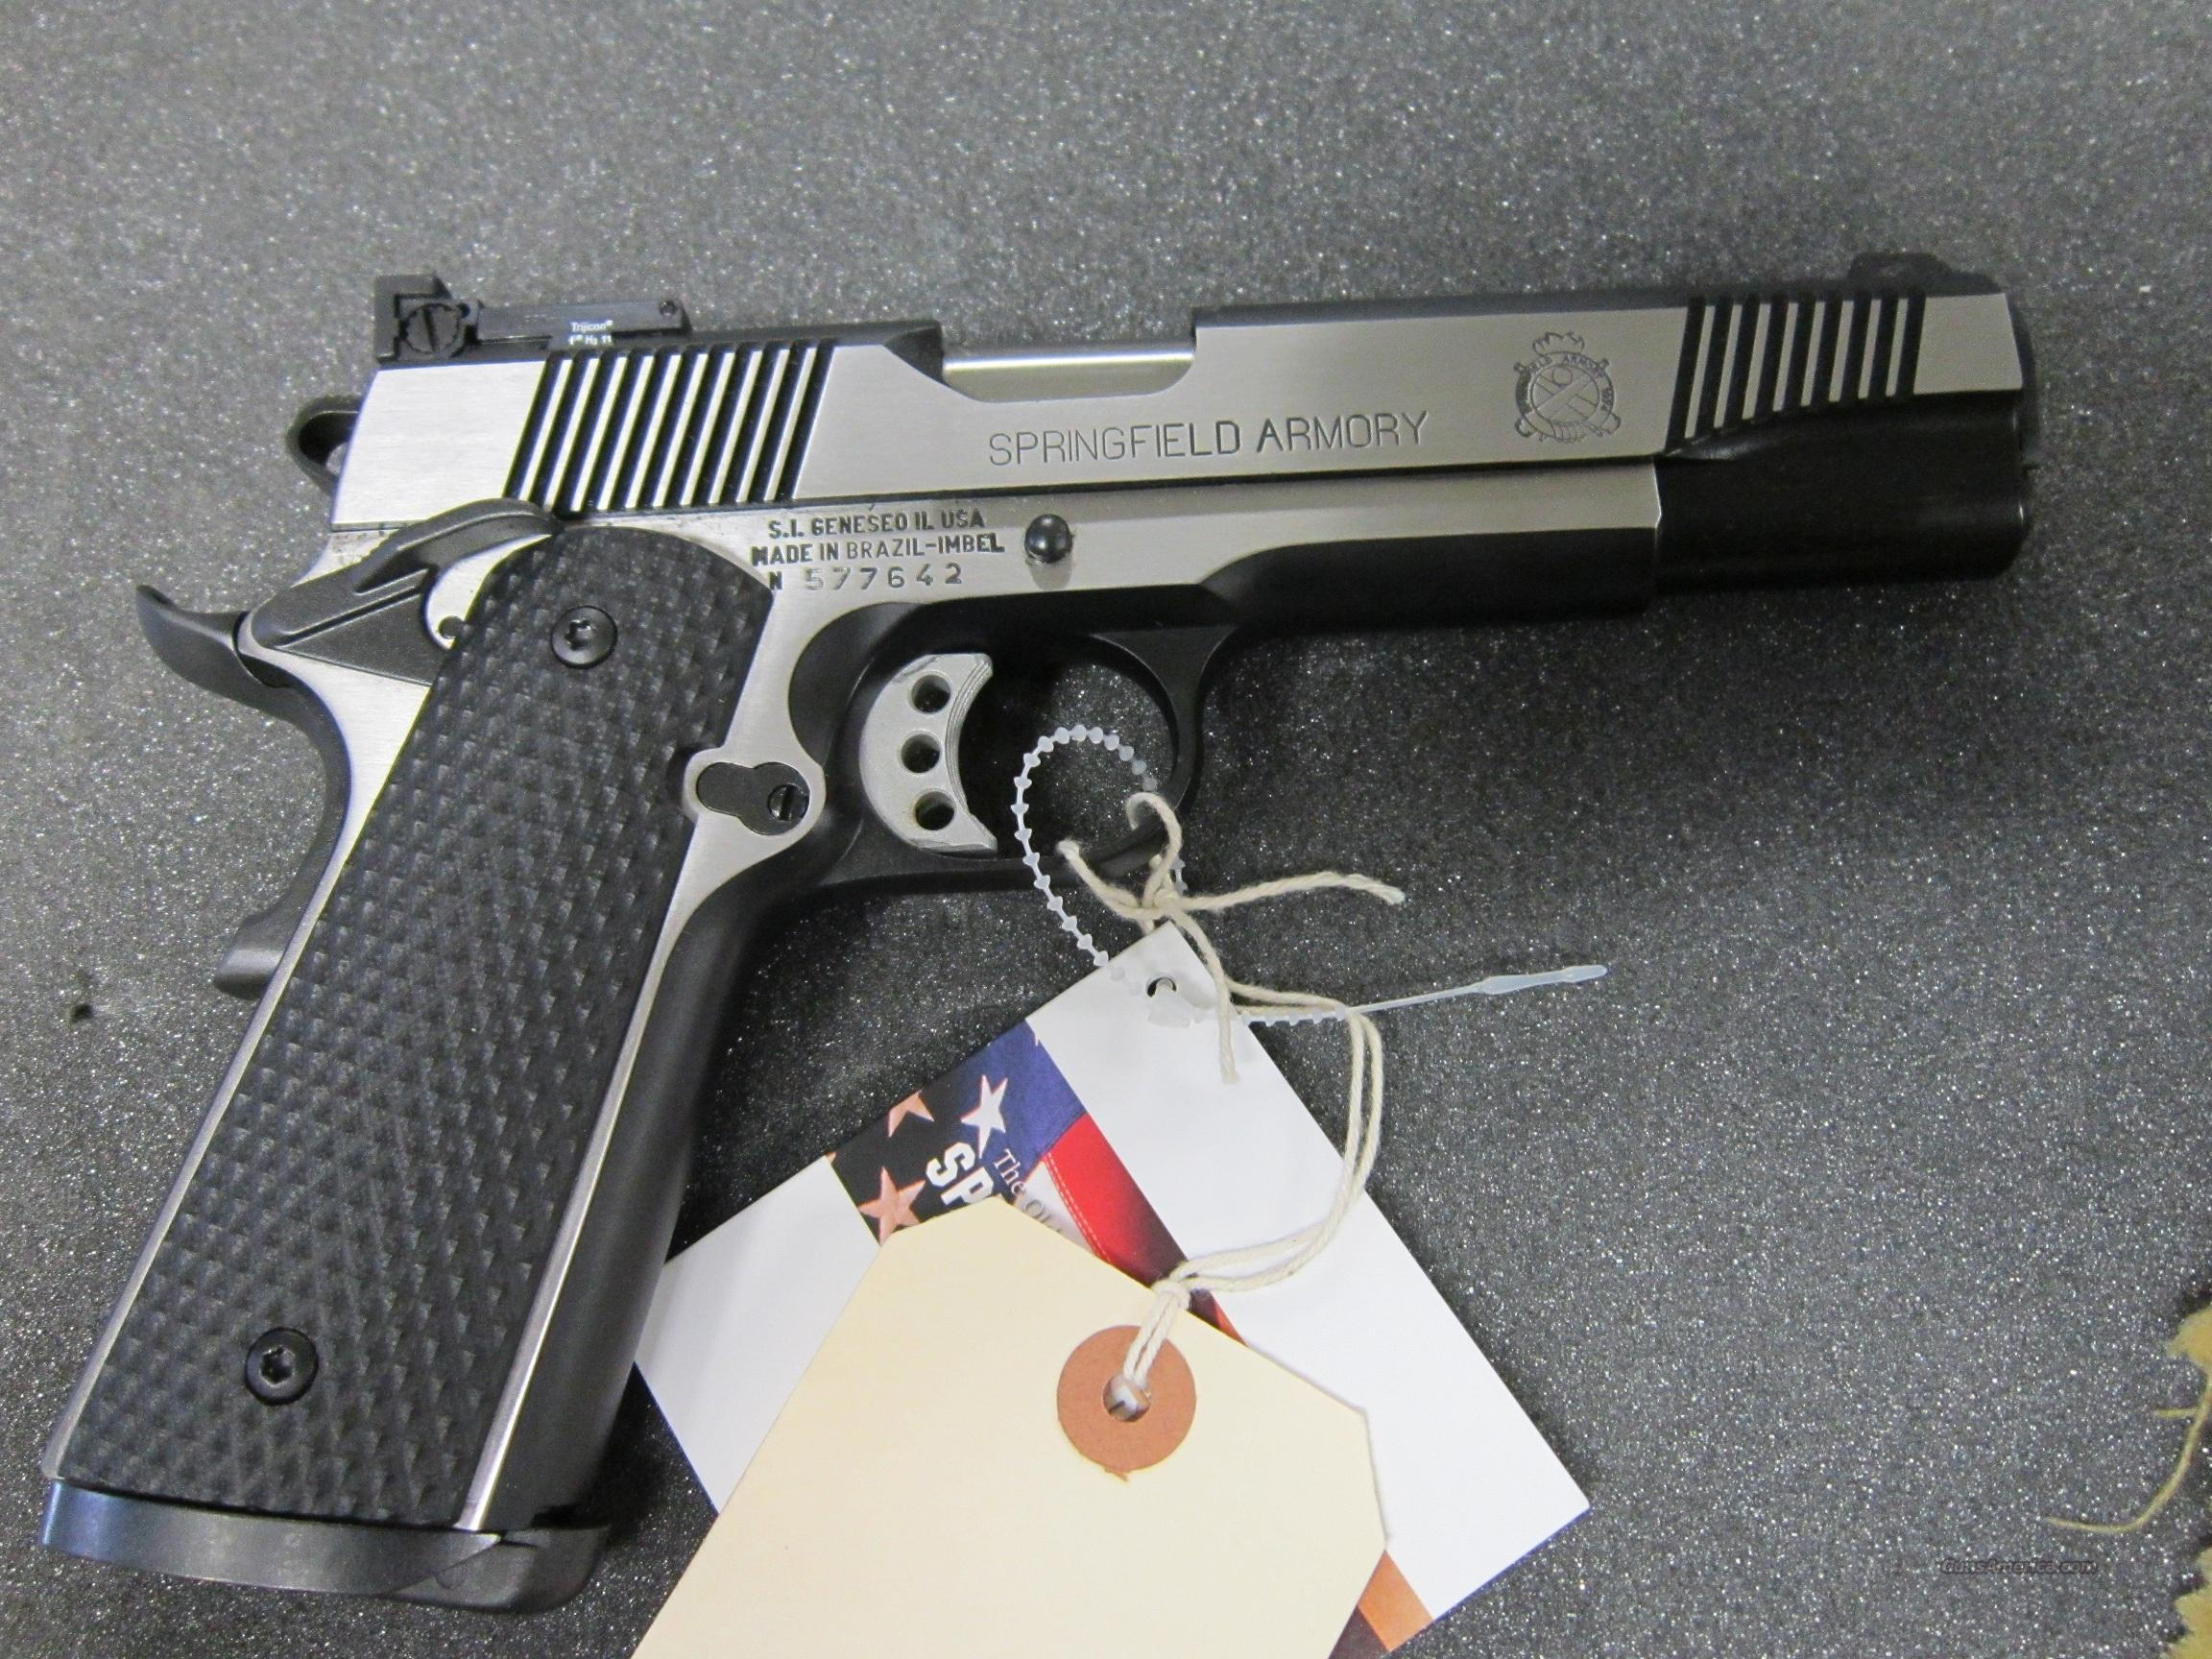 Springfield Armory 19111 Loaded Black Stainless Target  Guns > Pistols > Springfield Armory Pistols > 1911 Type